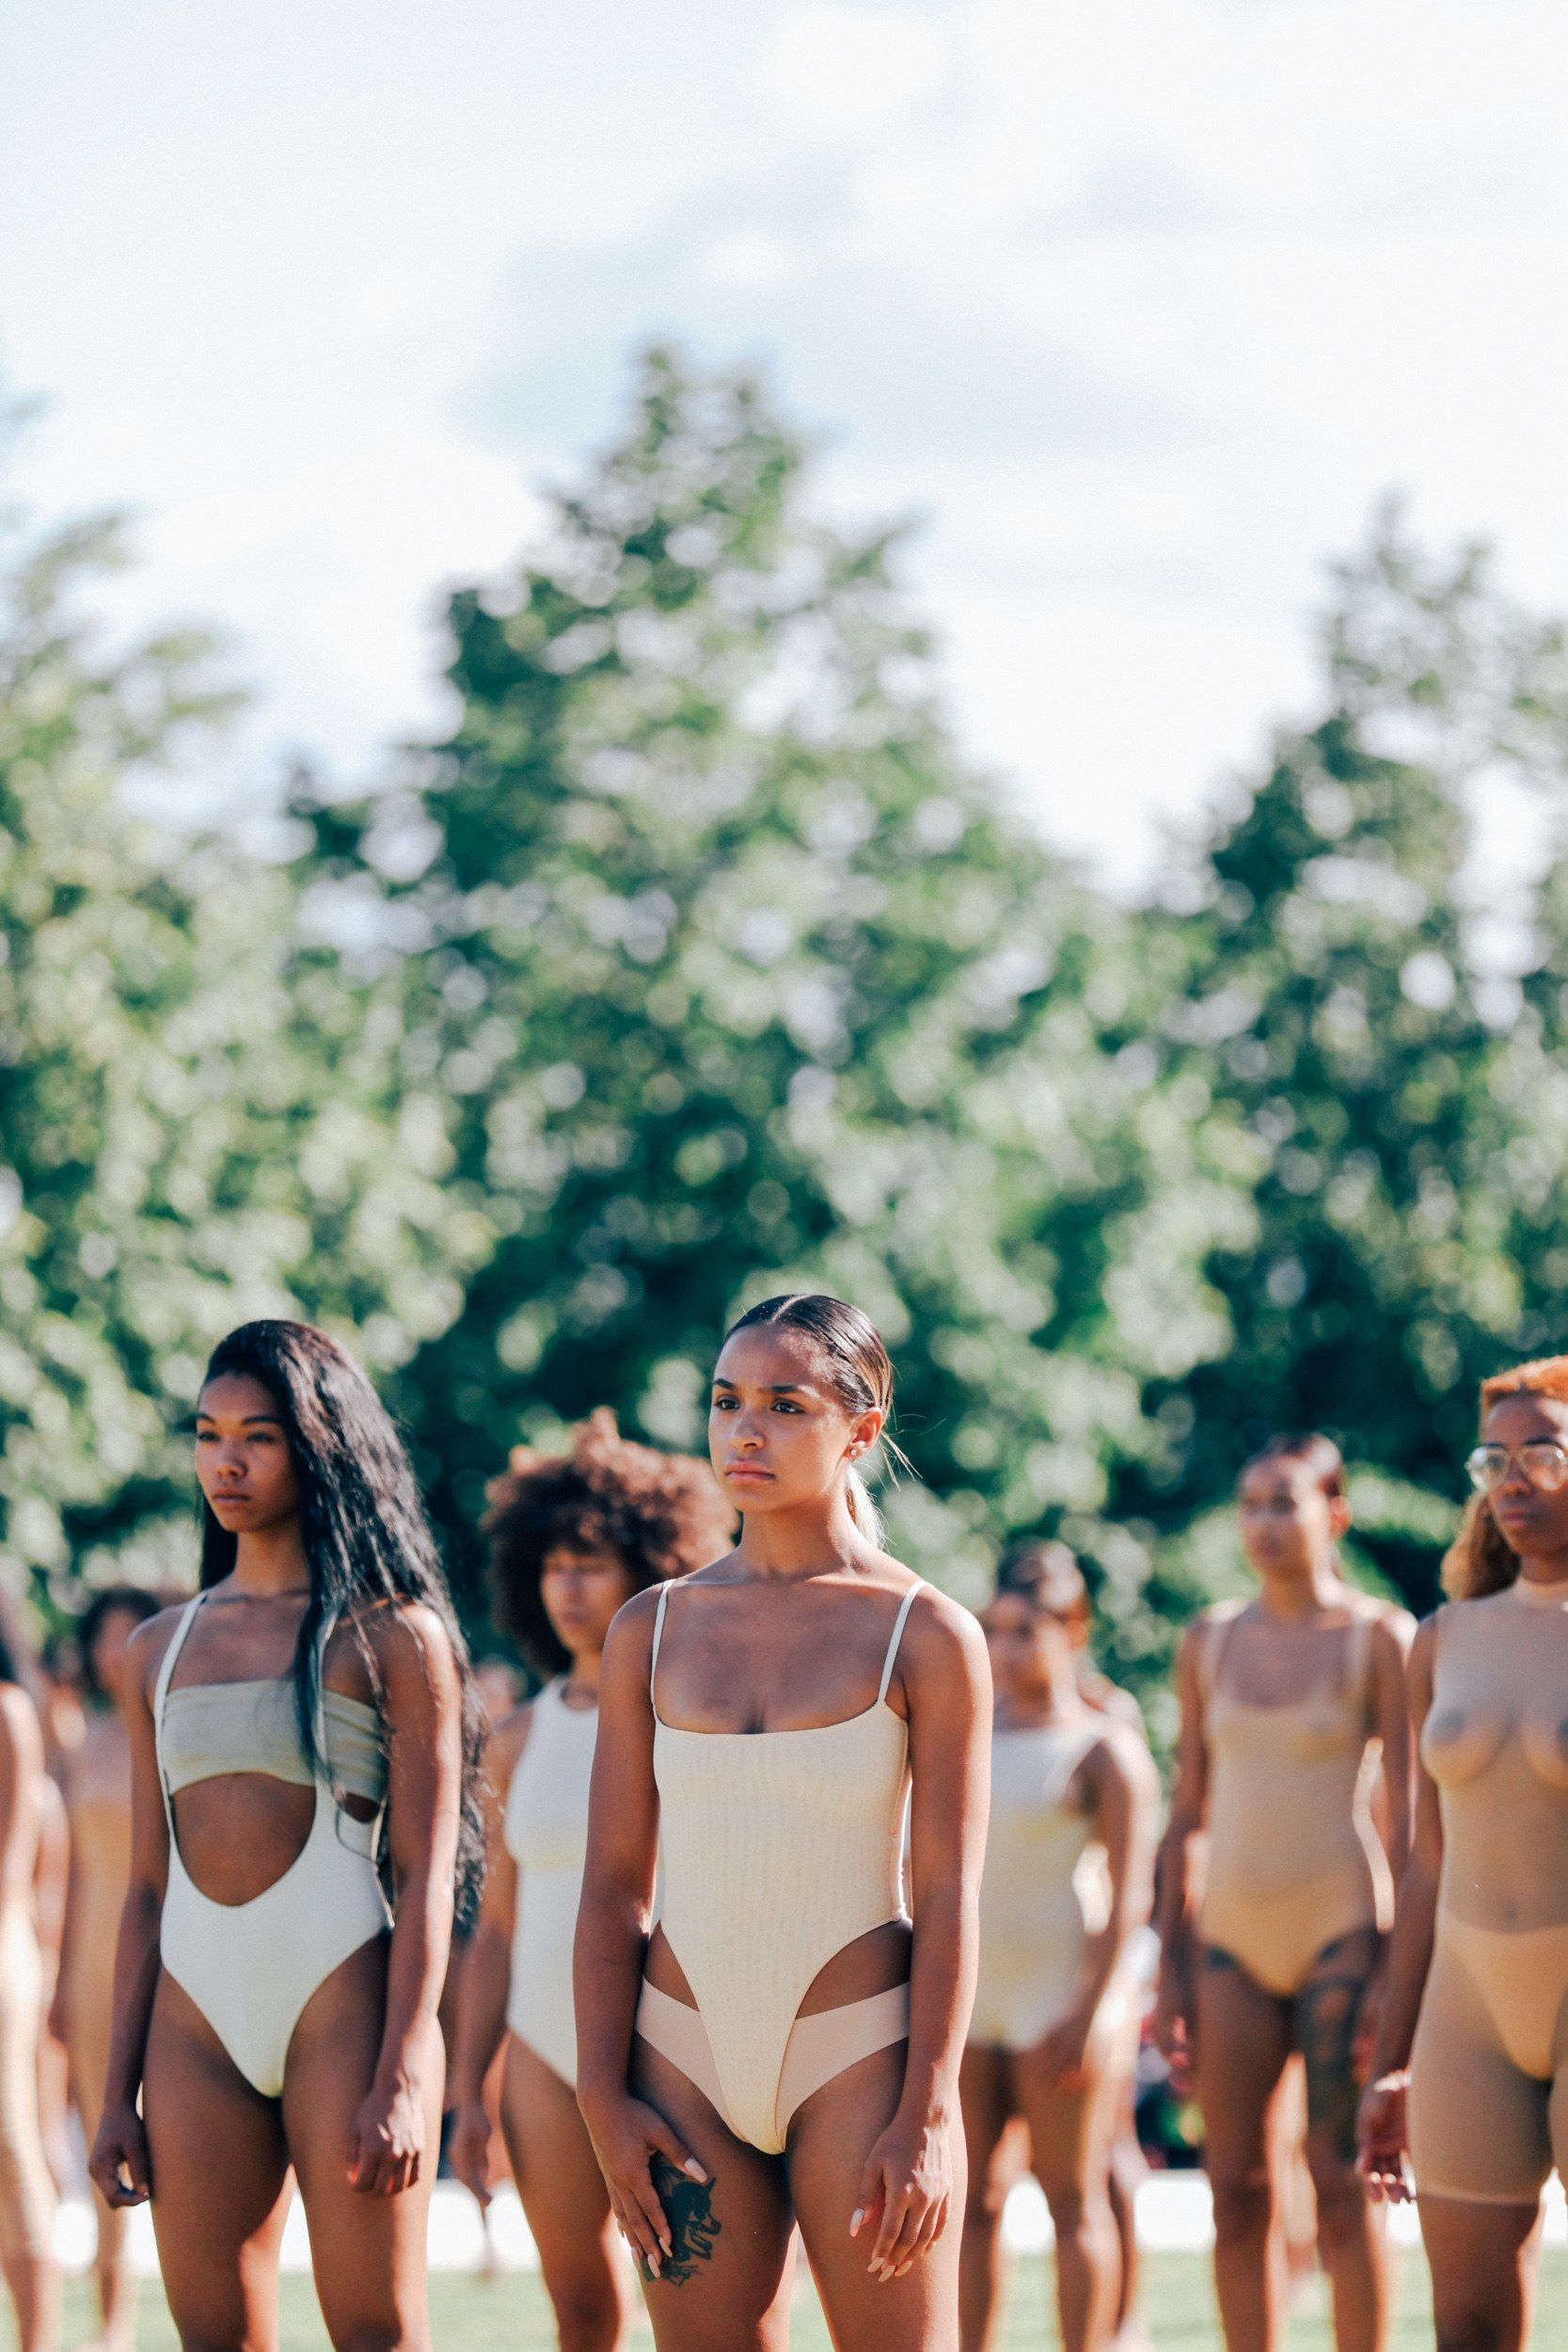 2d40046dd Yeezy Season 4  Exclusive Photos From the Fashion Show Everyone Is Talking  About